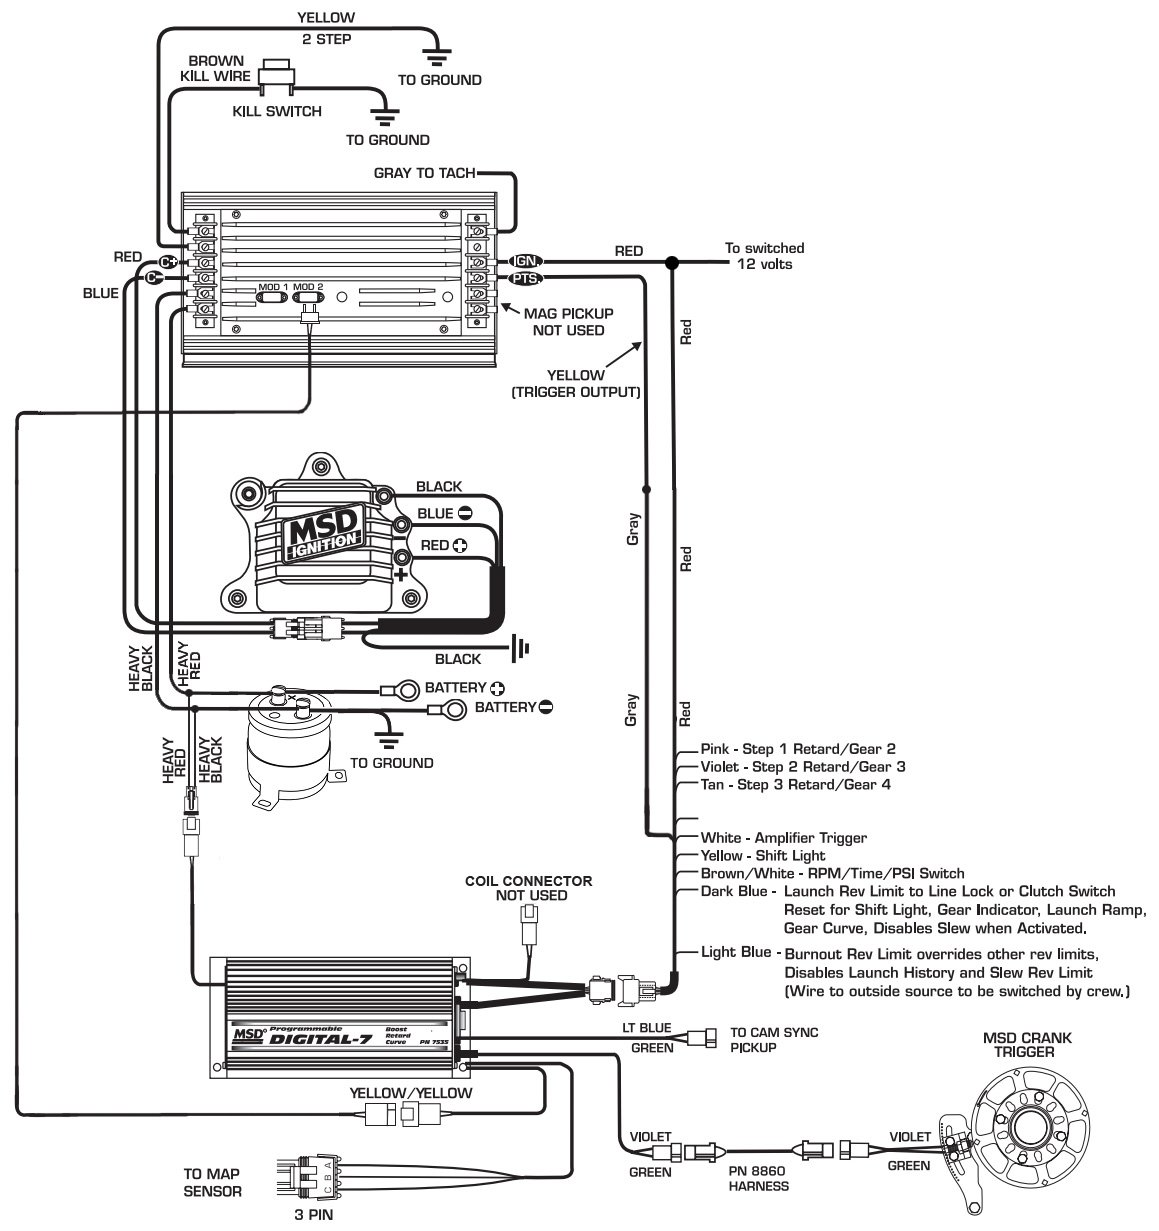 Tel Tac 2 Wiring Diagram : 24 Wiring Diagram Images